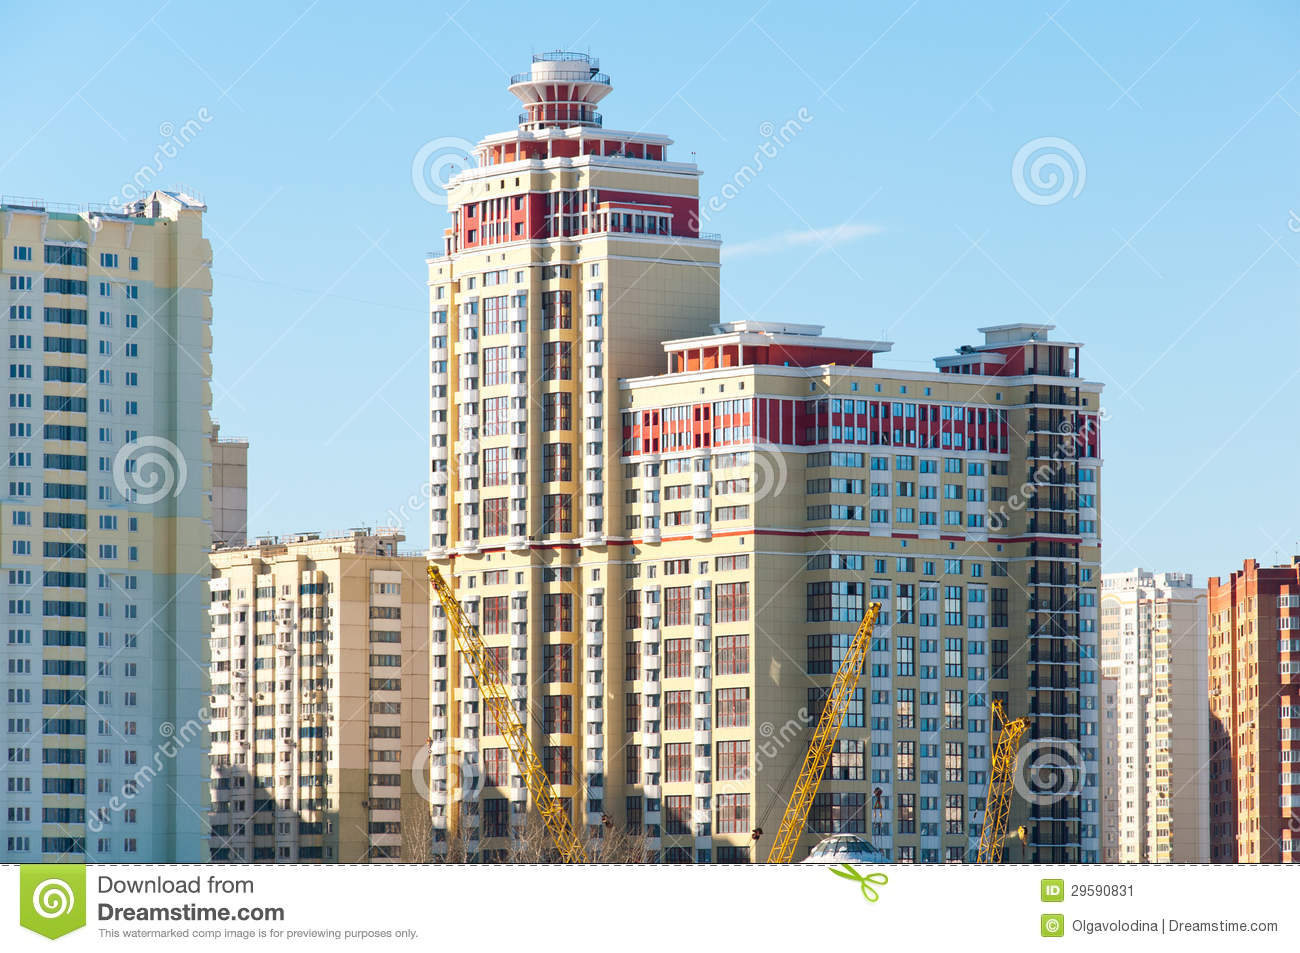 The construction of housing in Russia will attract the Chinese 88